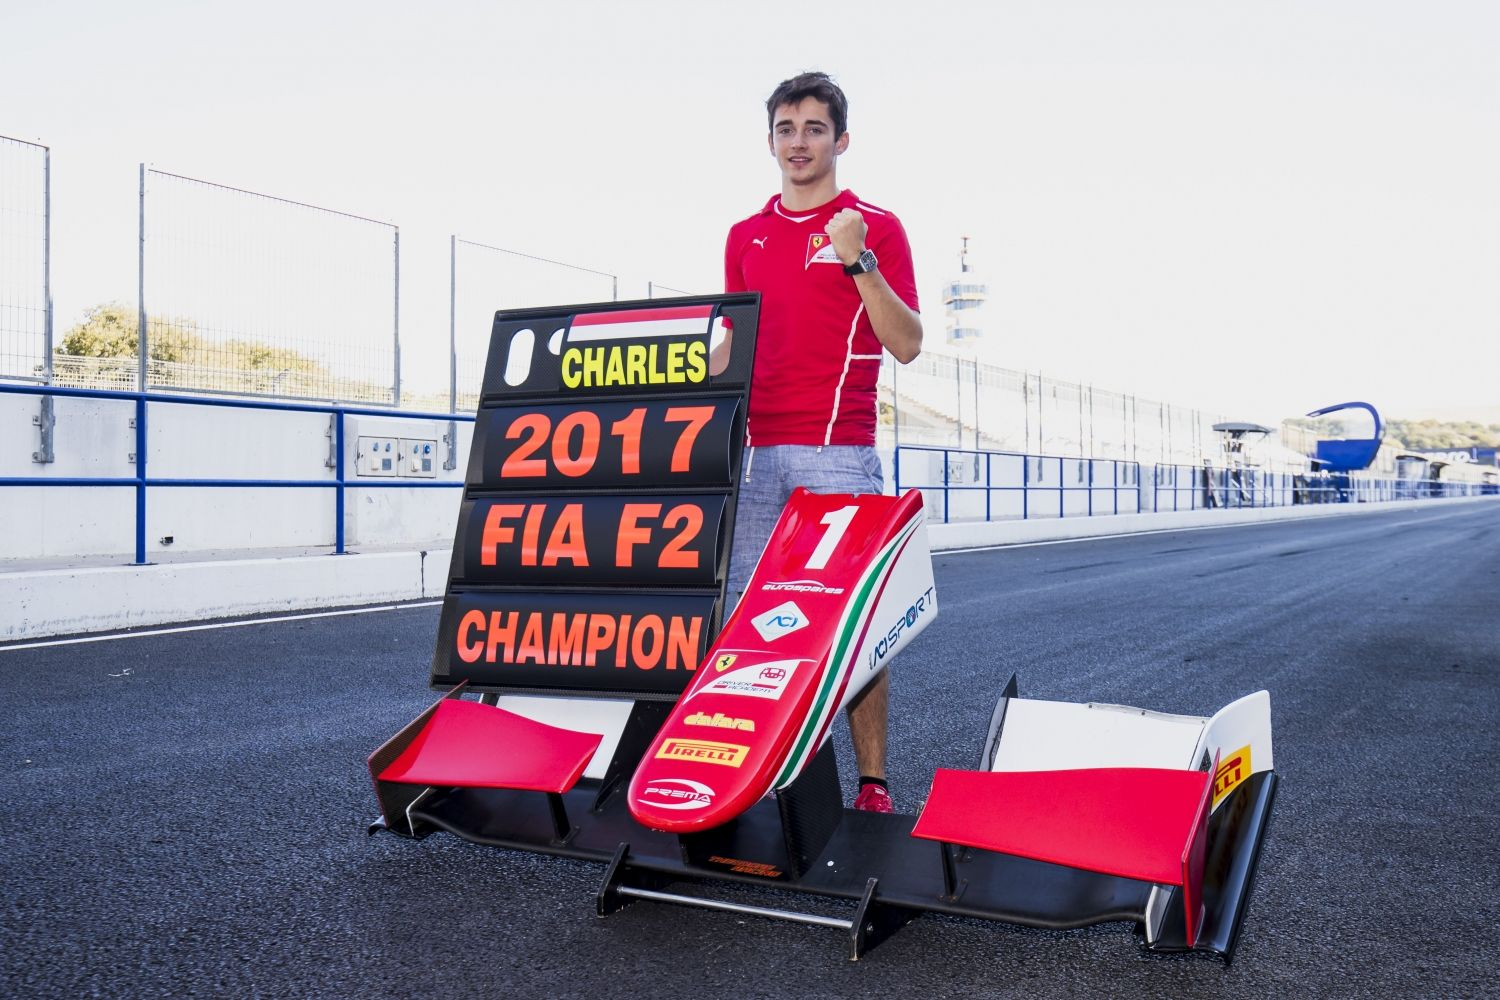 © F2 Media Service - Travail accompli pour Charles Leclerc